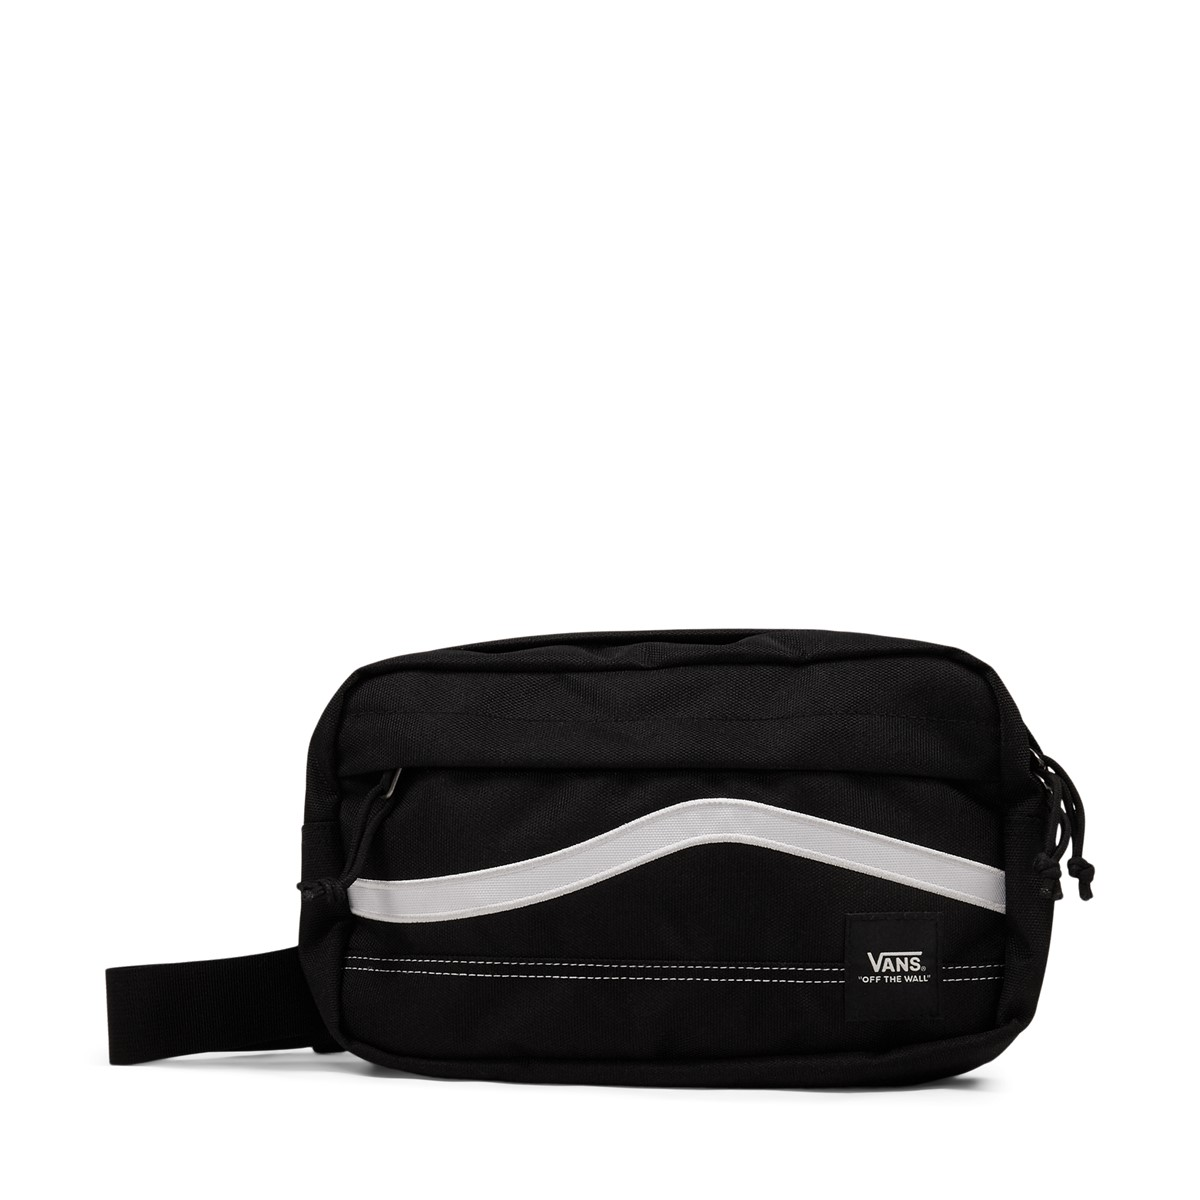 Construct Cross Body Bag in Black and White